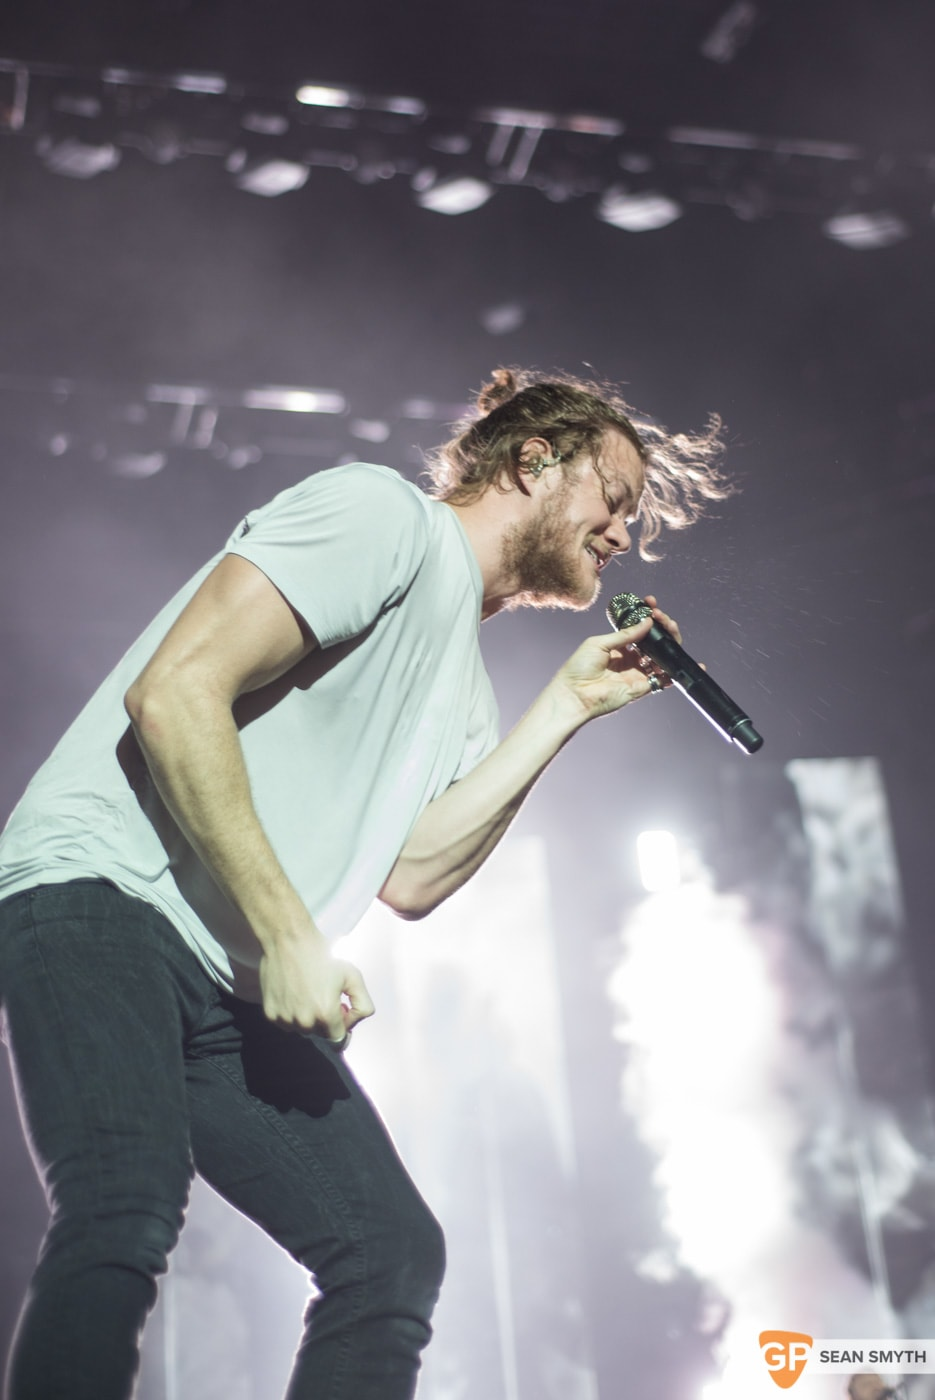 Imagine Dragons at 3Arena by Sean Smyth (18-11-15) (43 of 50)